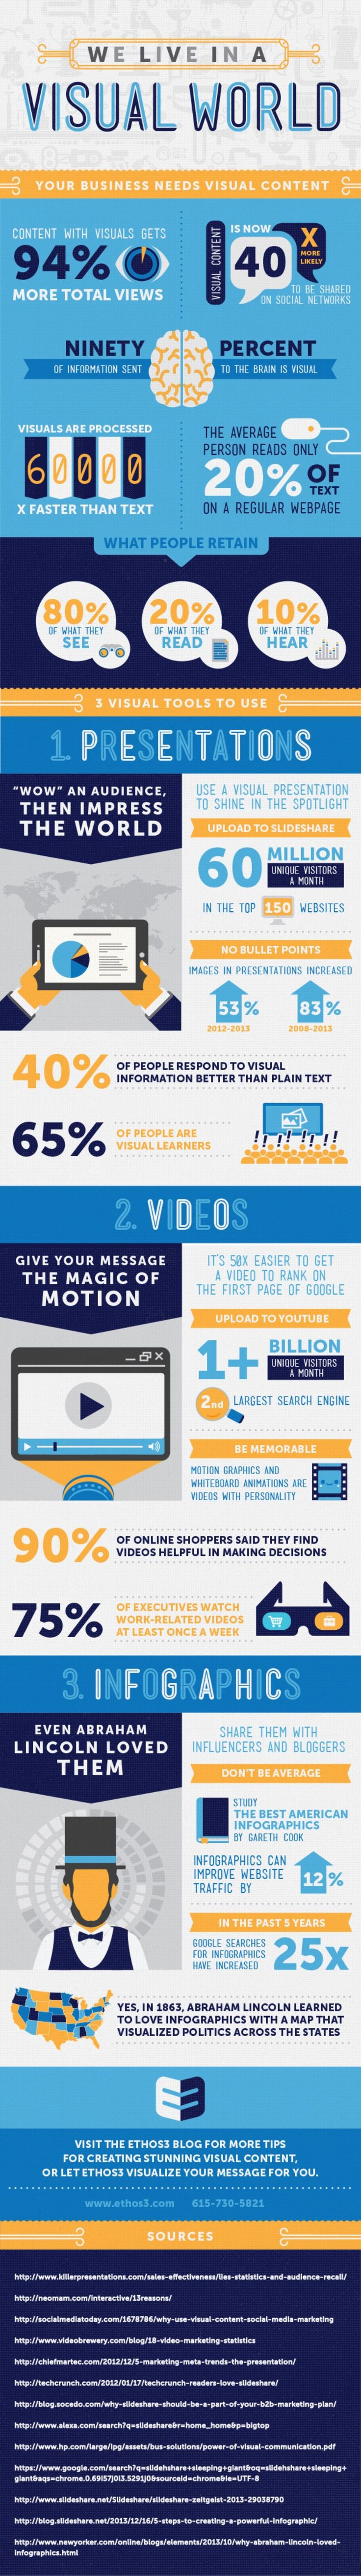 3 Types of #Visual Content You Should Add to Your #Marketing Mix #Infographic #SocialMedia